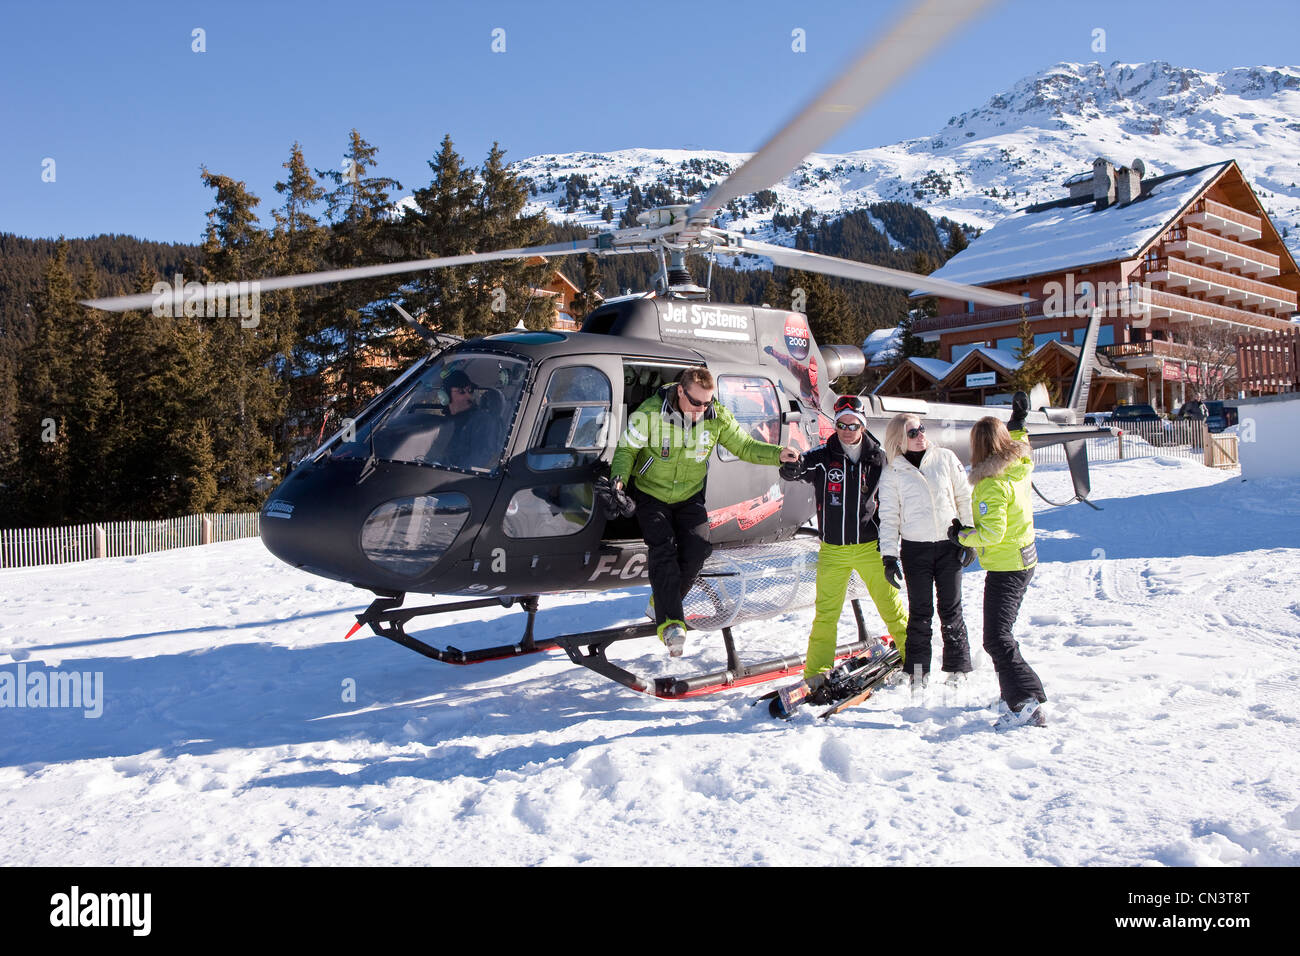 France, Savoie, Méribel, massif of Vanoise, Tarentaise valley, ski slopes of 3 valleys, couples in sports of - Stock Image